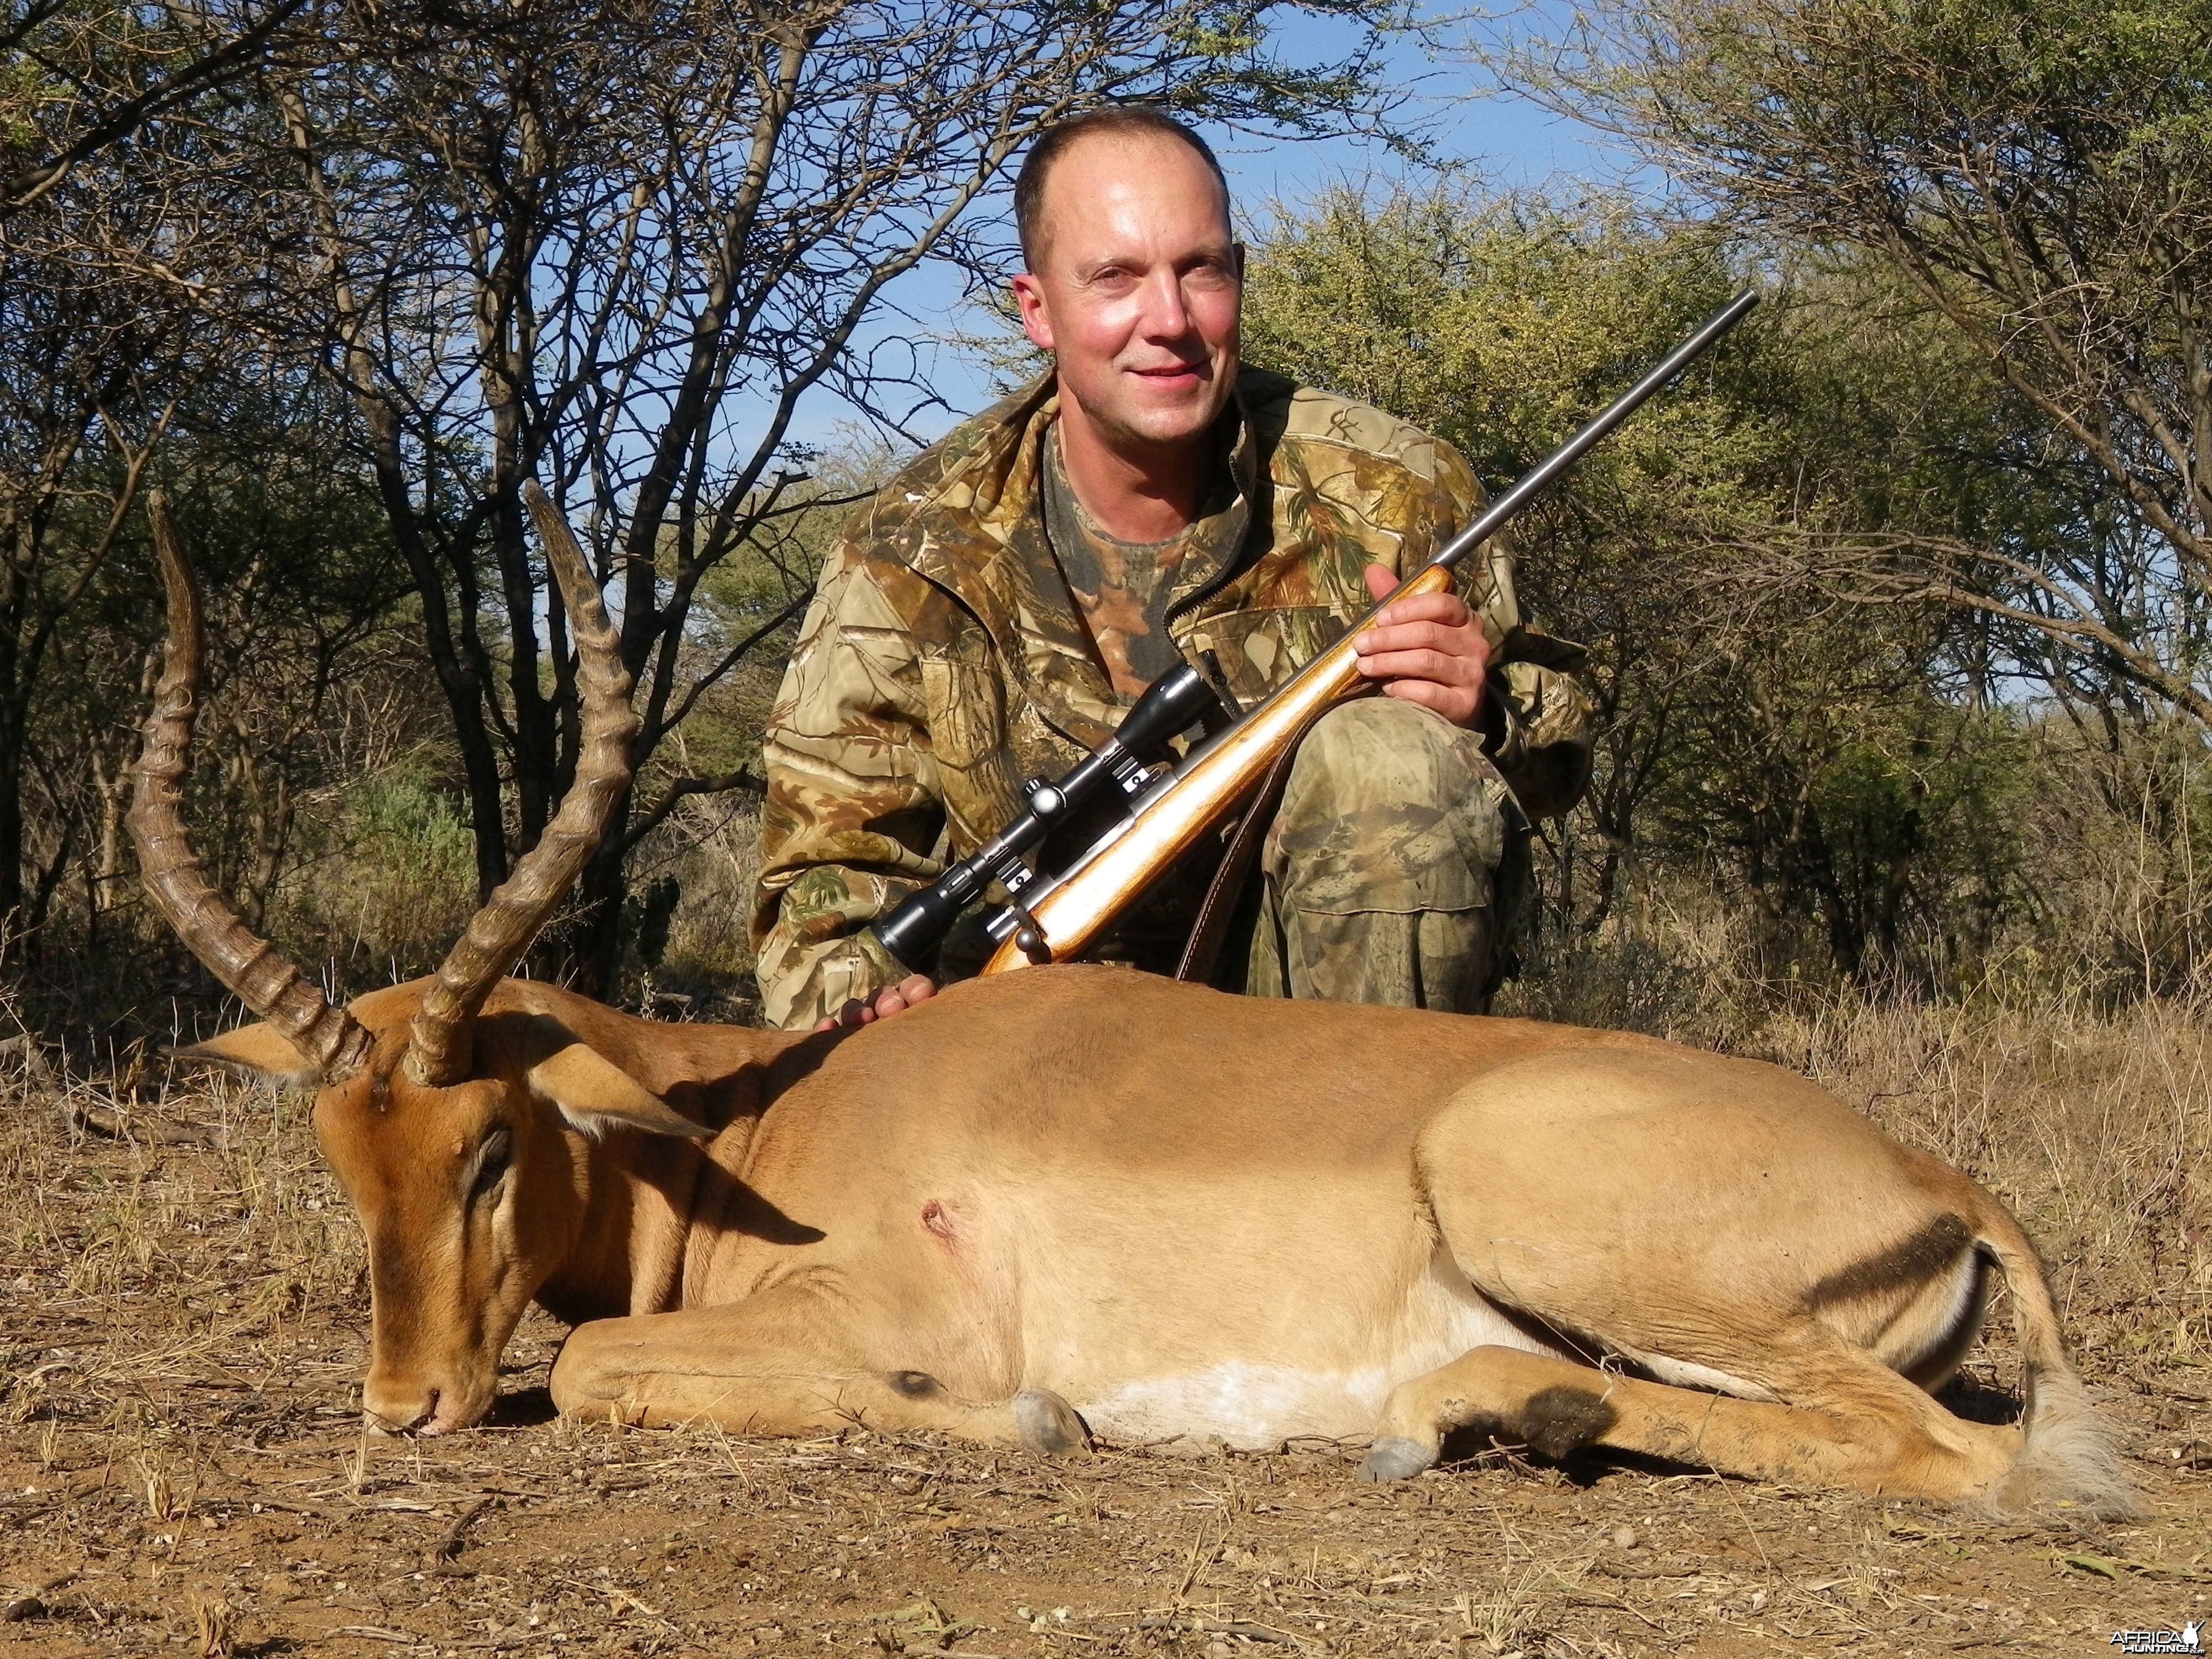 Impala hunted with Ozondjahe Hunting Safaris in Namibia